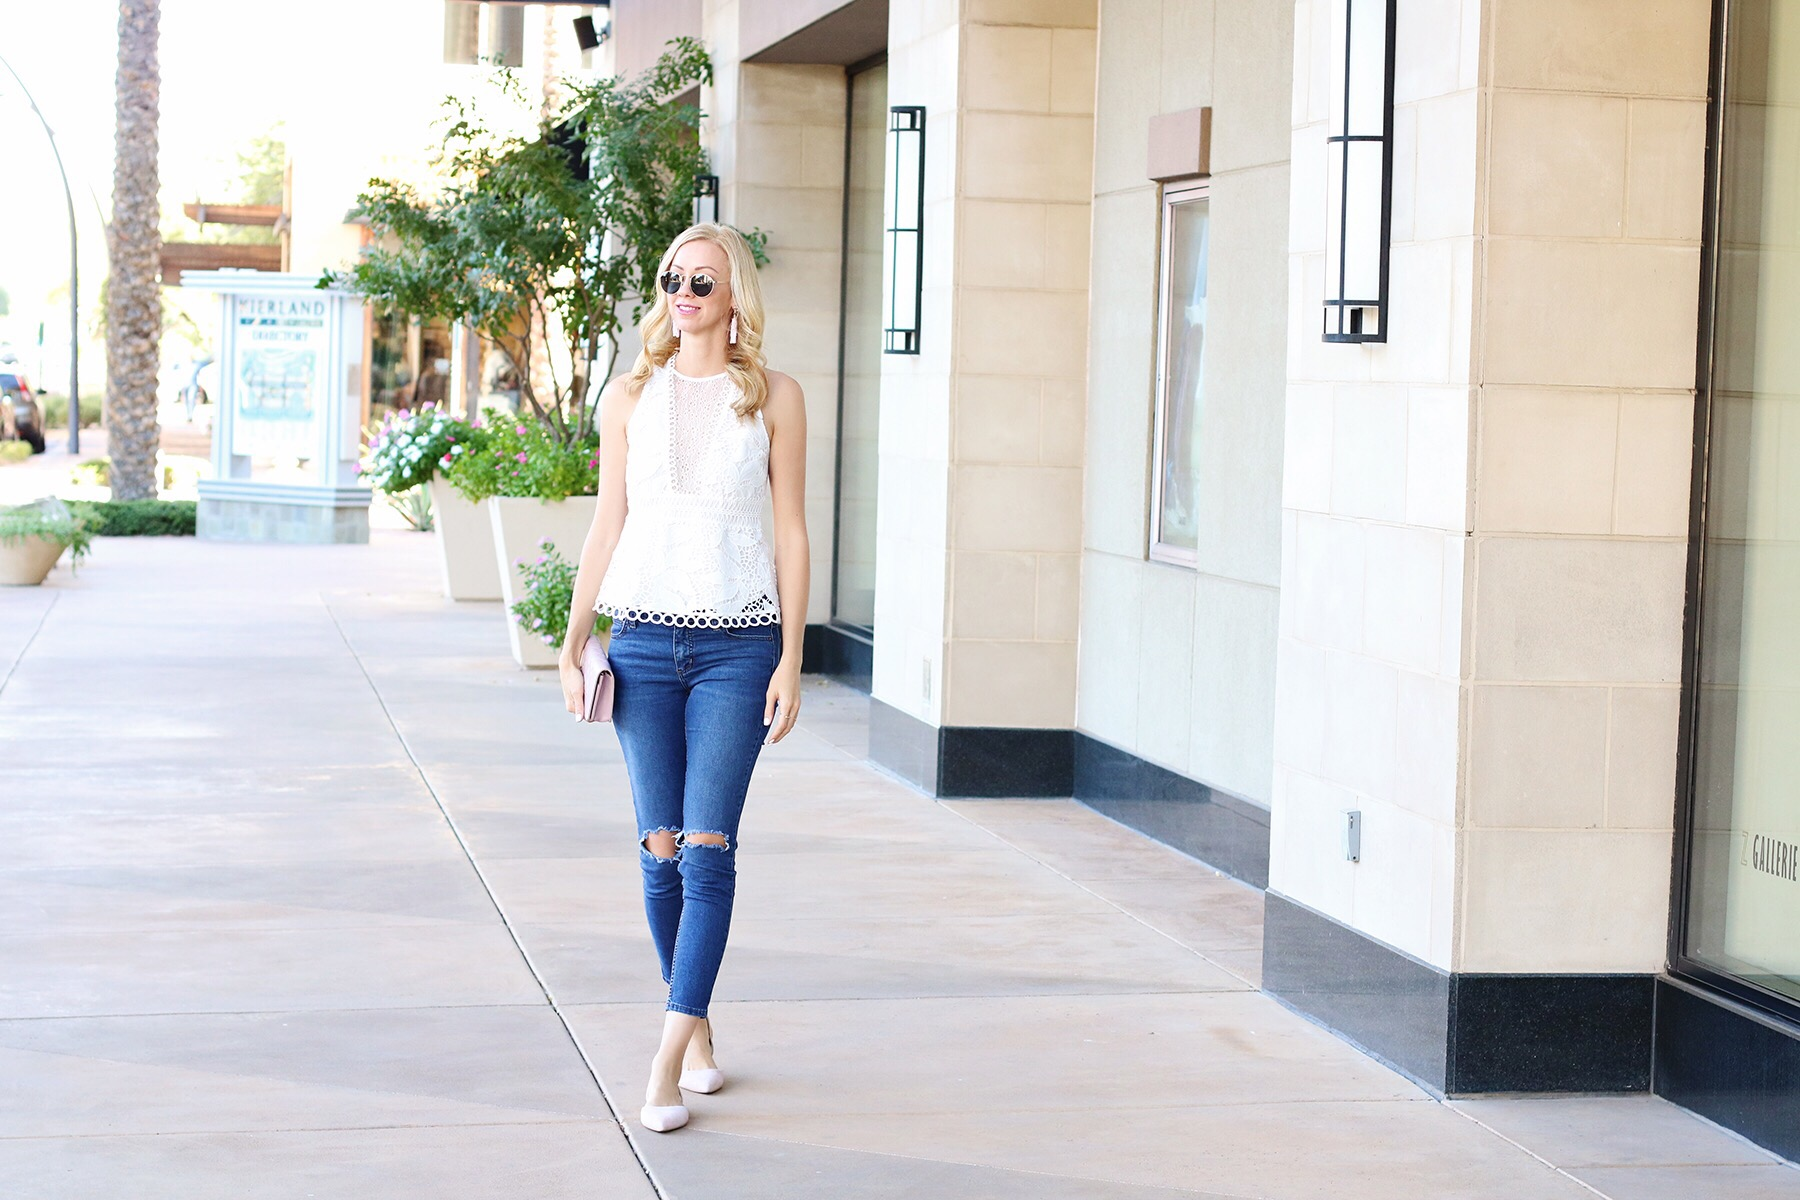 pink-suede-slingback-flats-rippd-jeans-white-lace-top.jpg